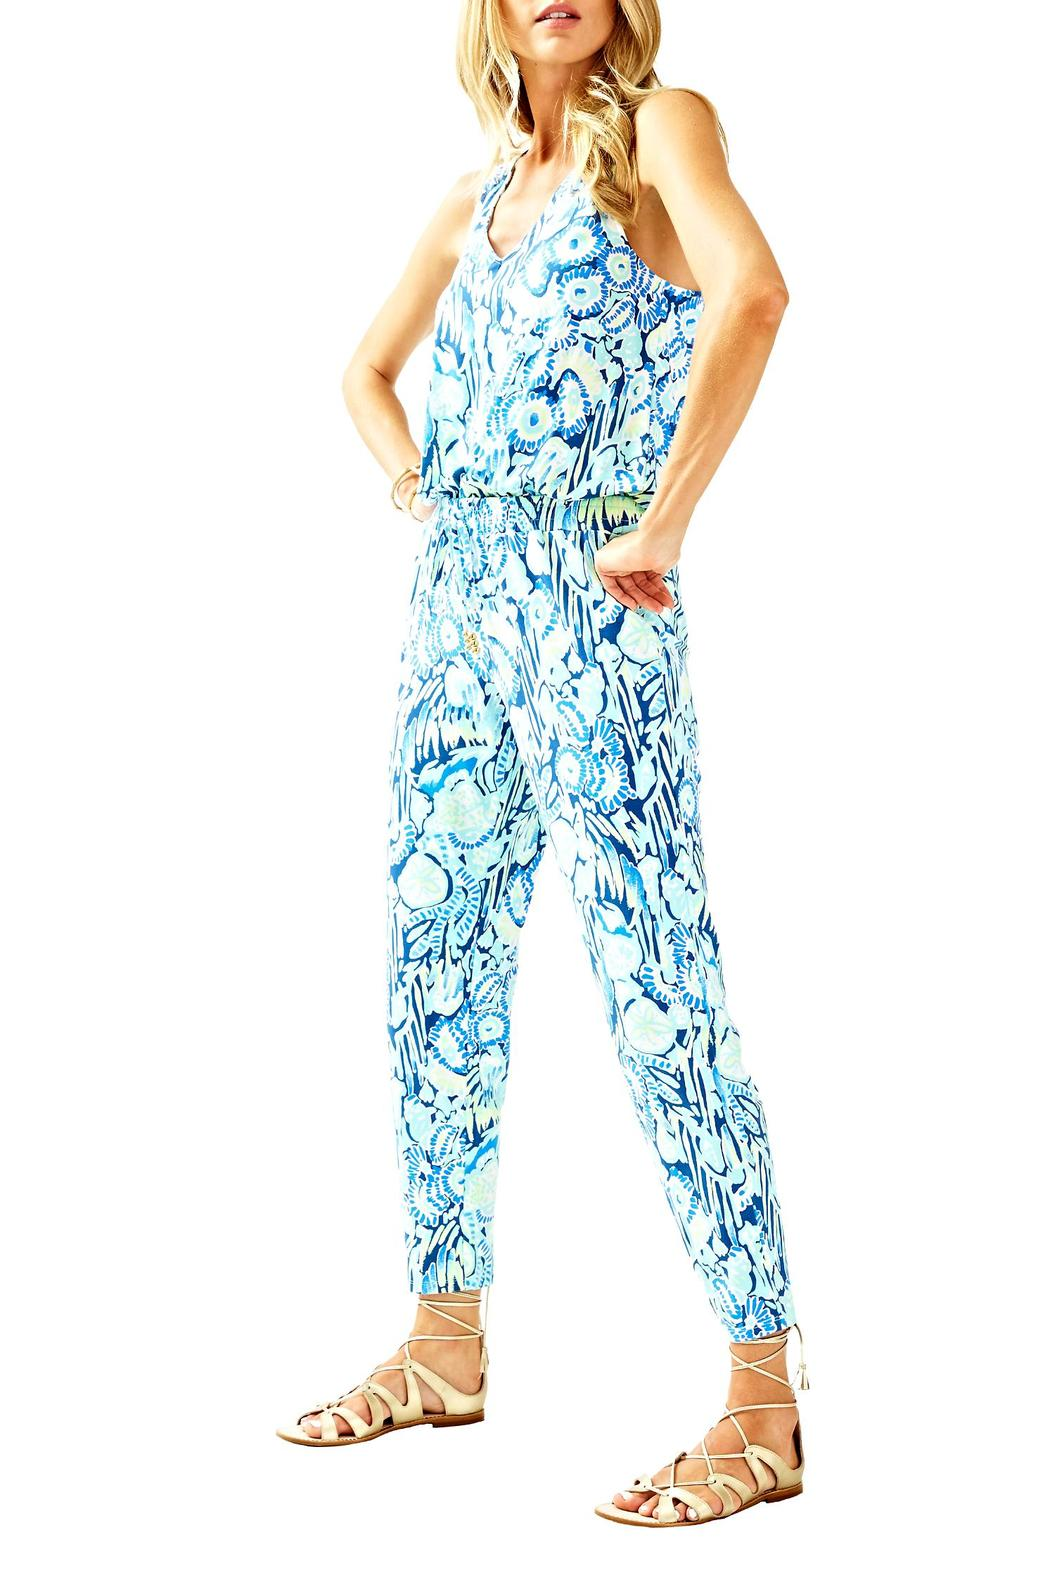 Lilly Pulitzer Paulina Jumpsuit From Sandestin Golf And